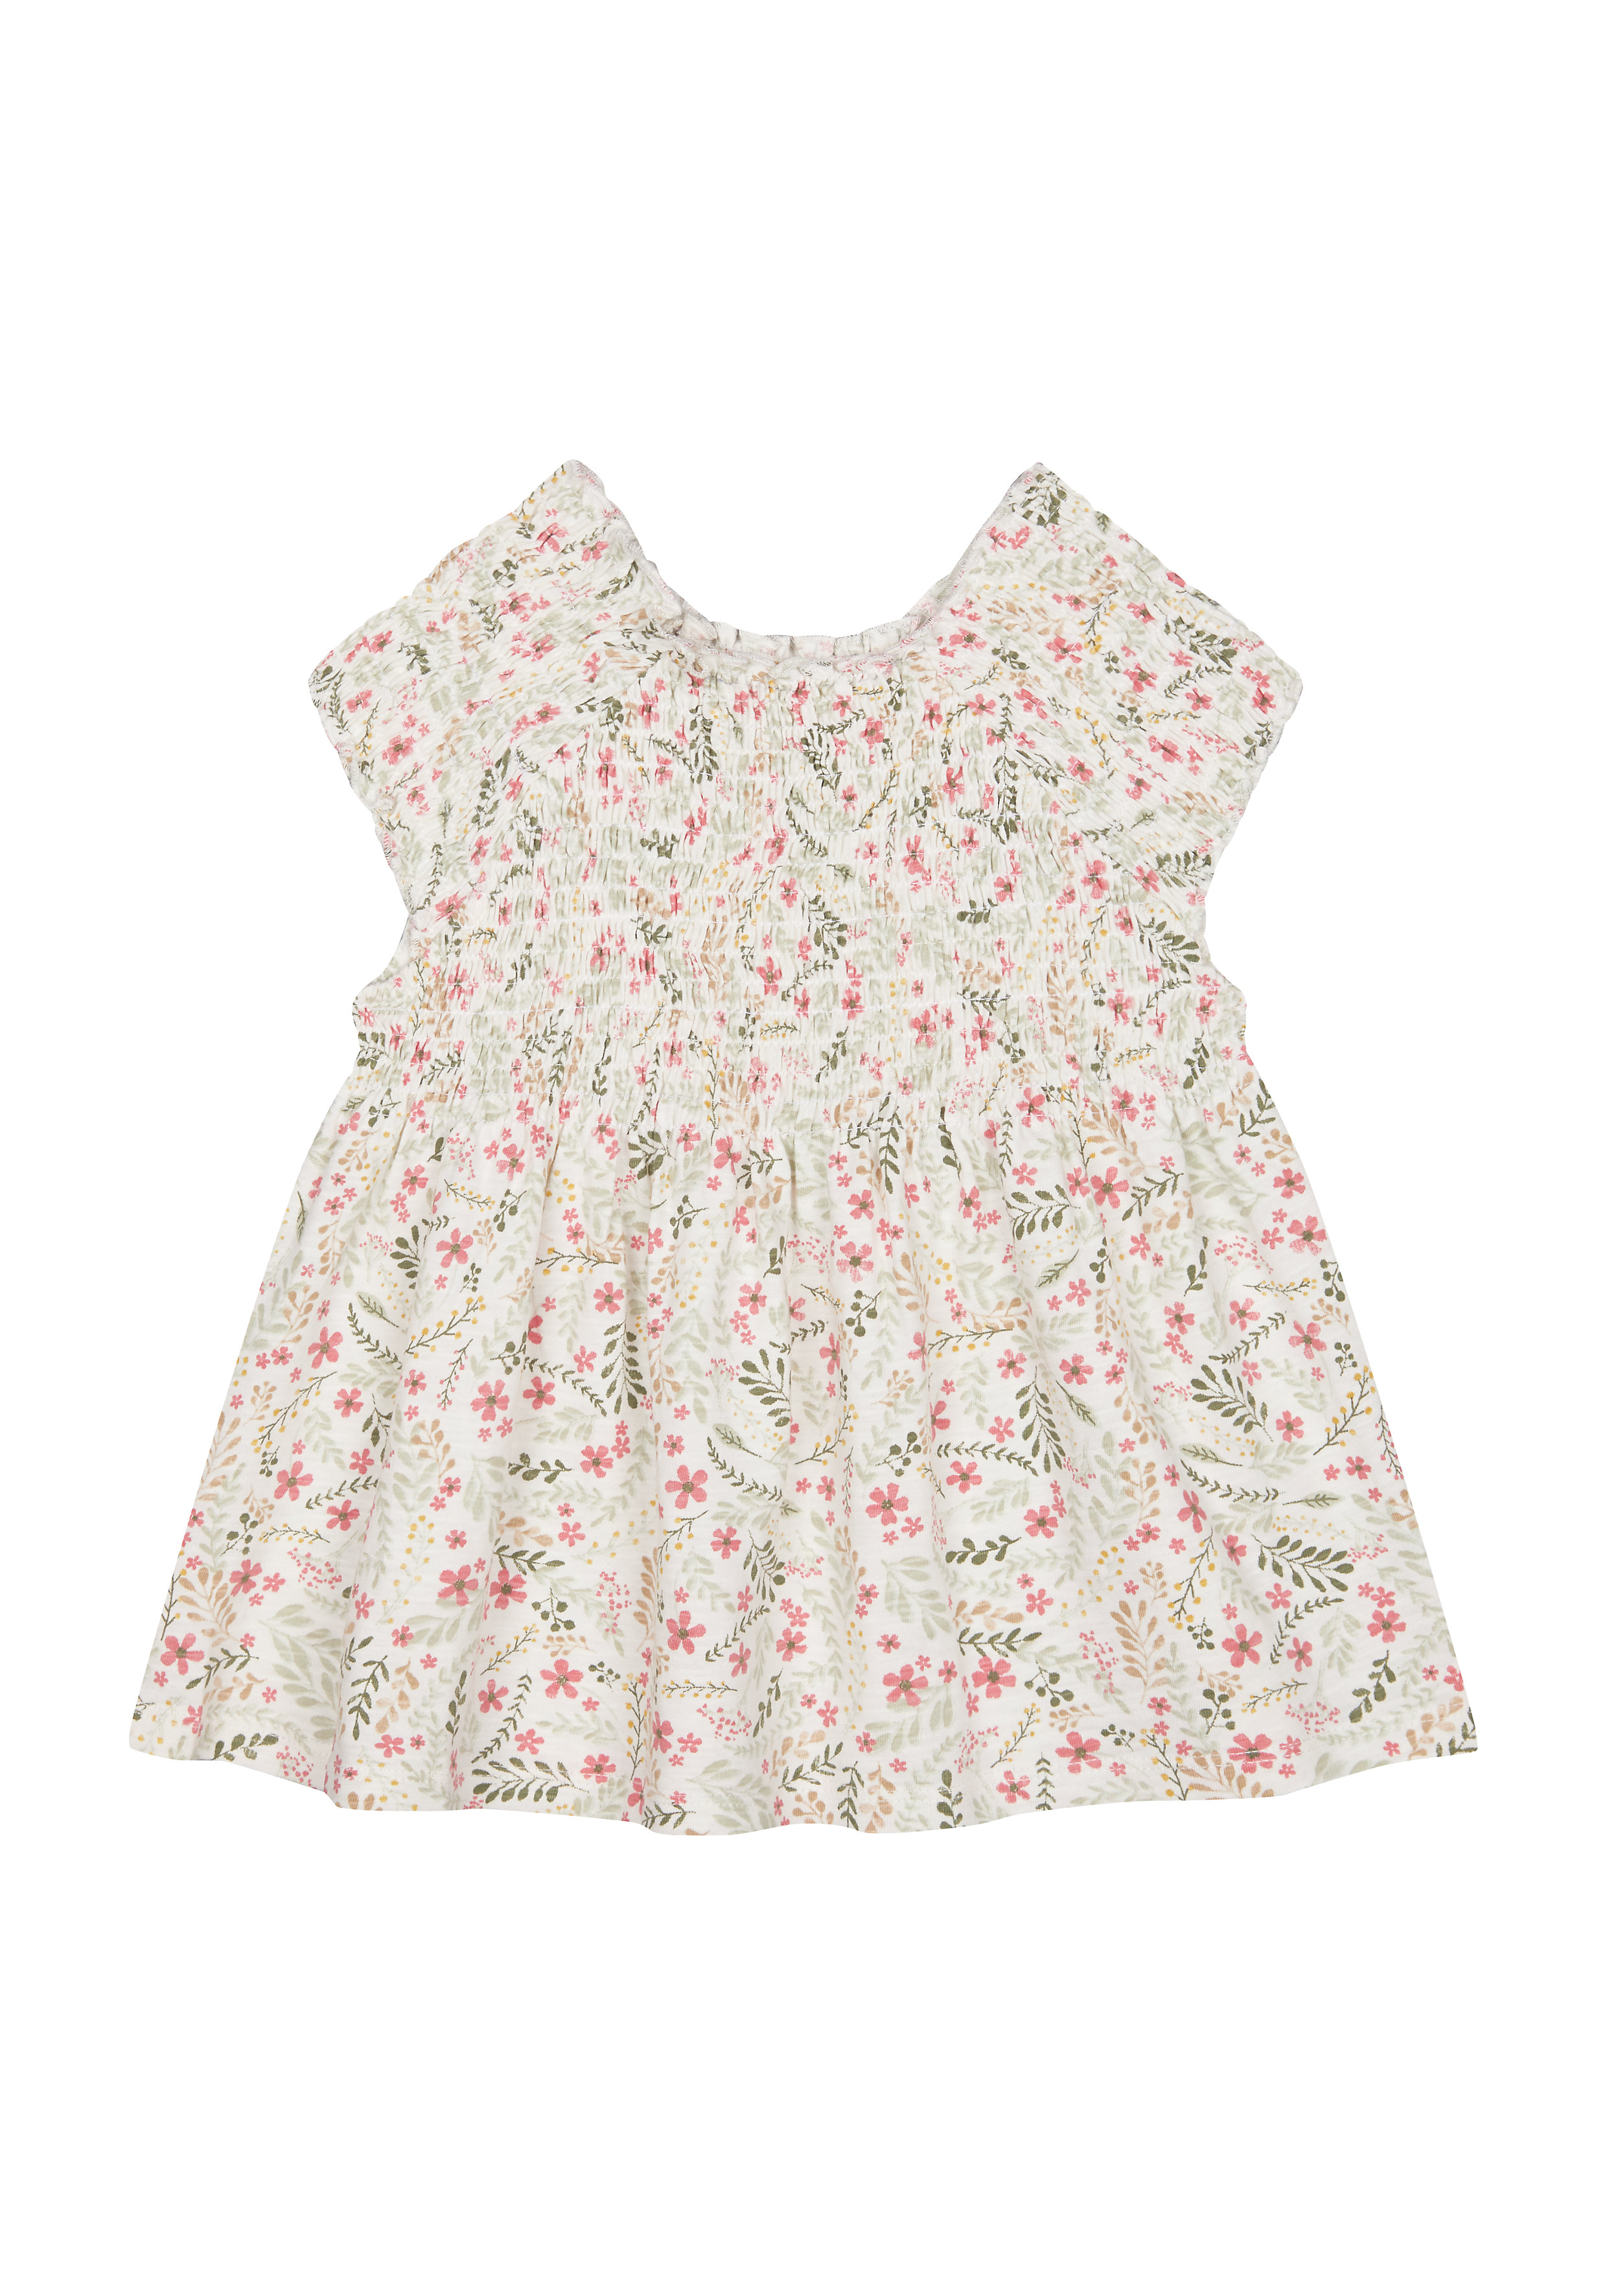 Mothercare | Girls Half Sleeves Tops  - Multicolor